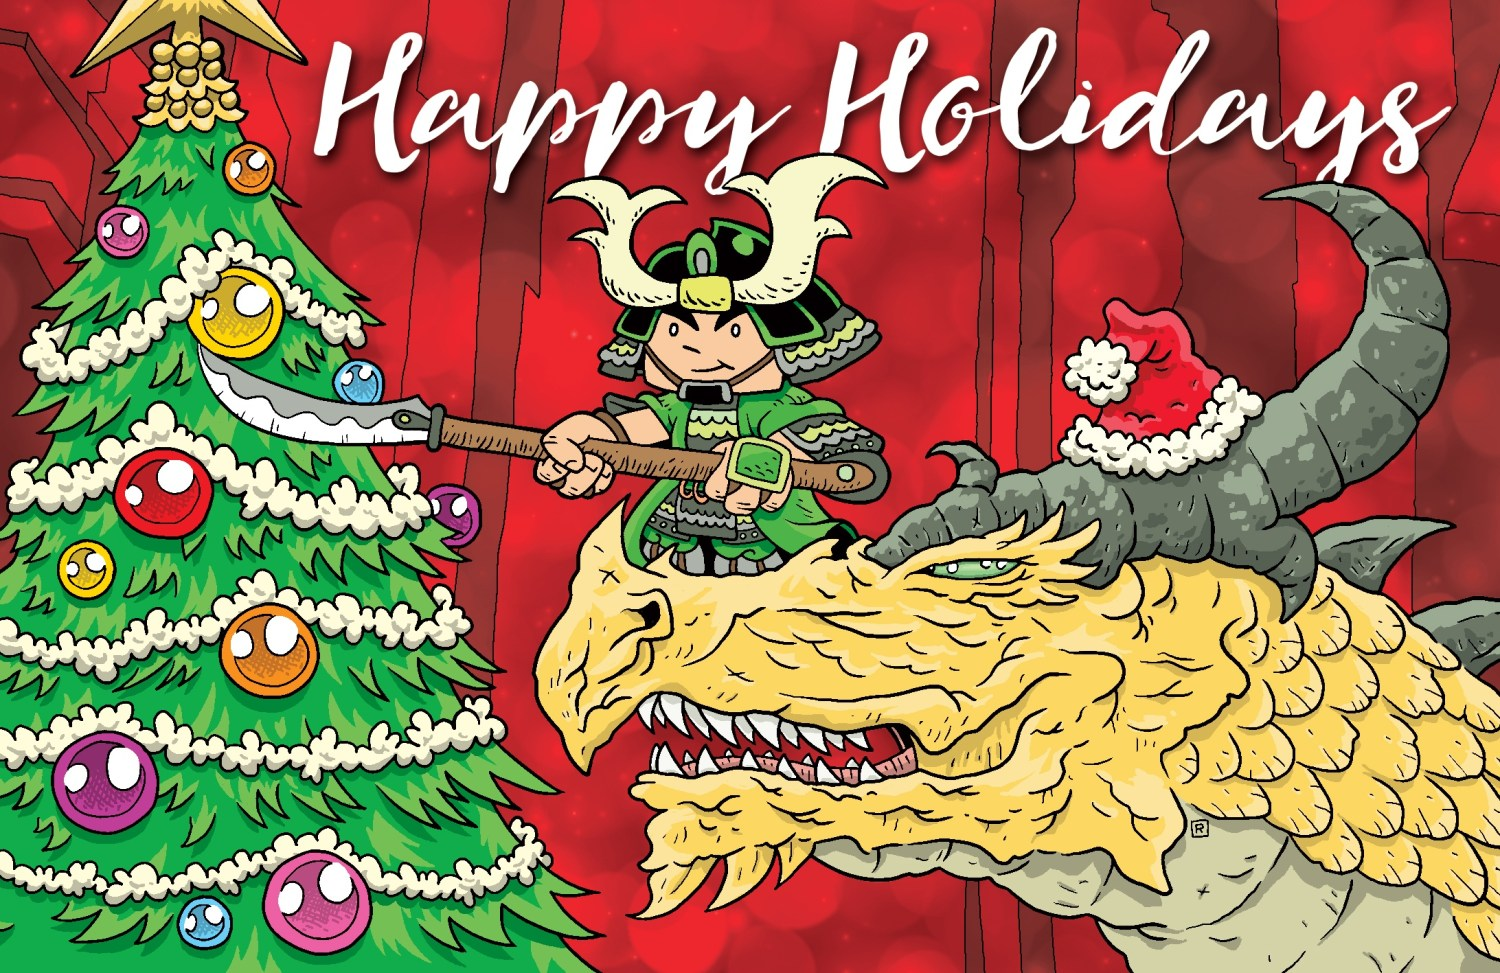 Happy Holidays From Green Ronin!